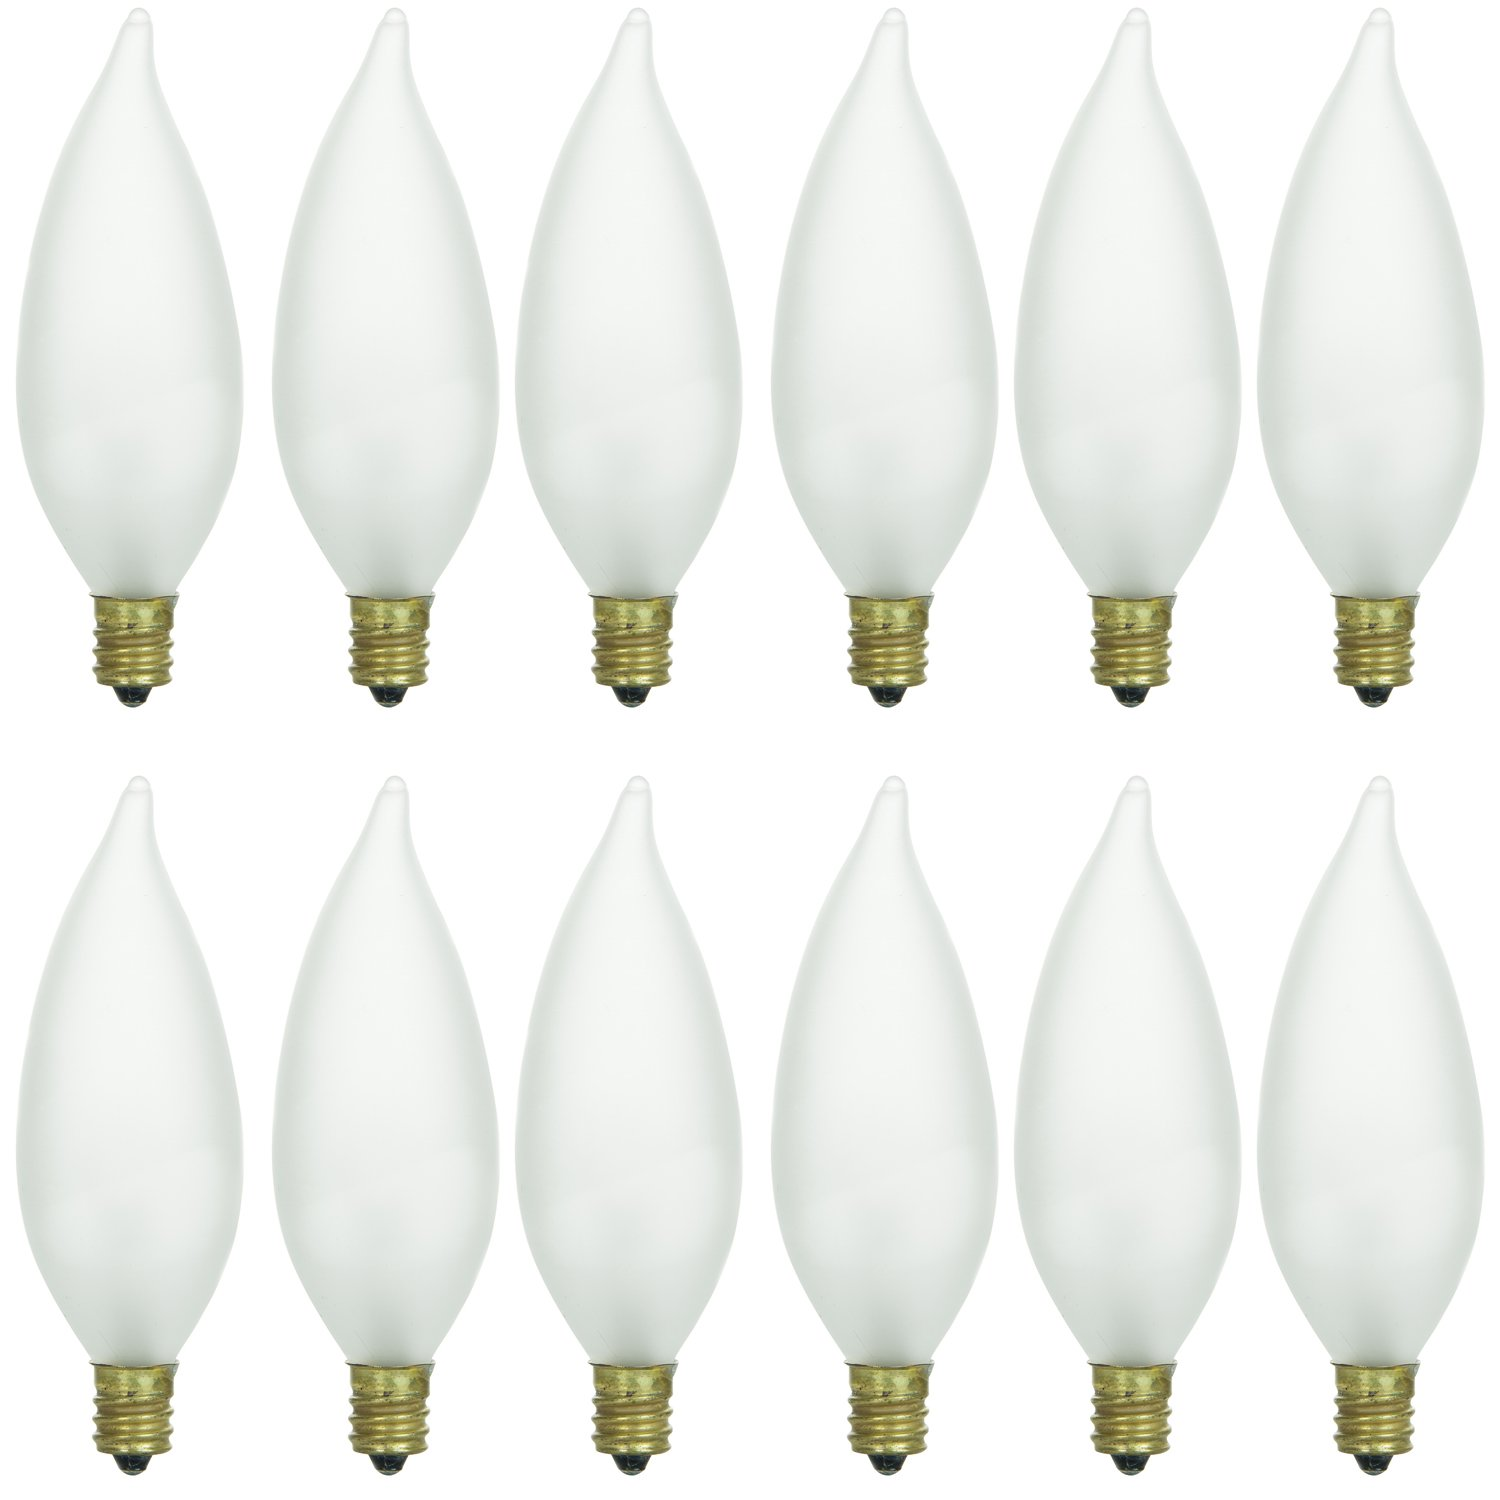 Sunlite 40031-SU 12-Pack Flame Tip Chandelier Bulbs 40 Watts, Candelabra Base (E12), 120 Volt, Frost, Incandescent, Dimmable, 12 Pack, 32K - Warm White, 12 Piece